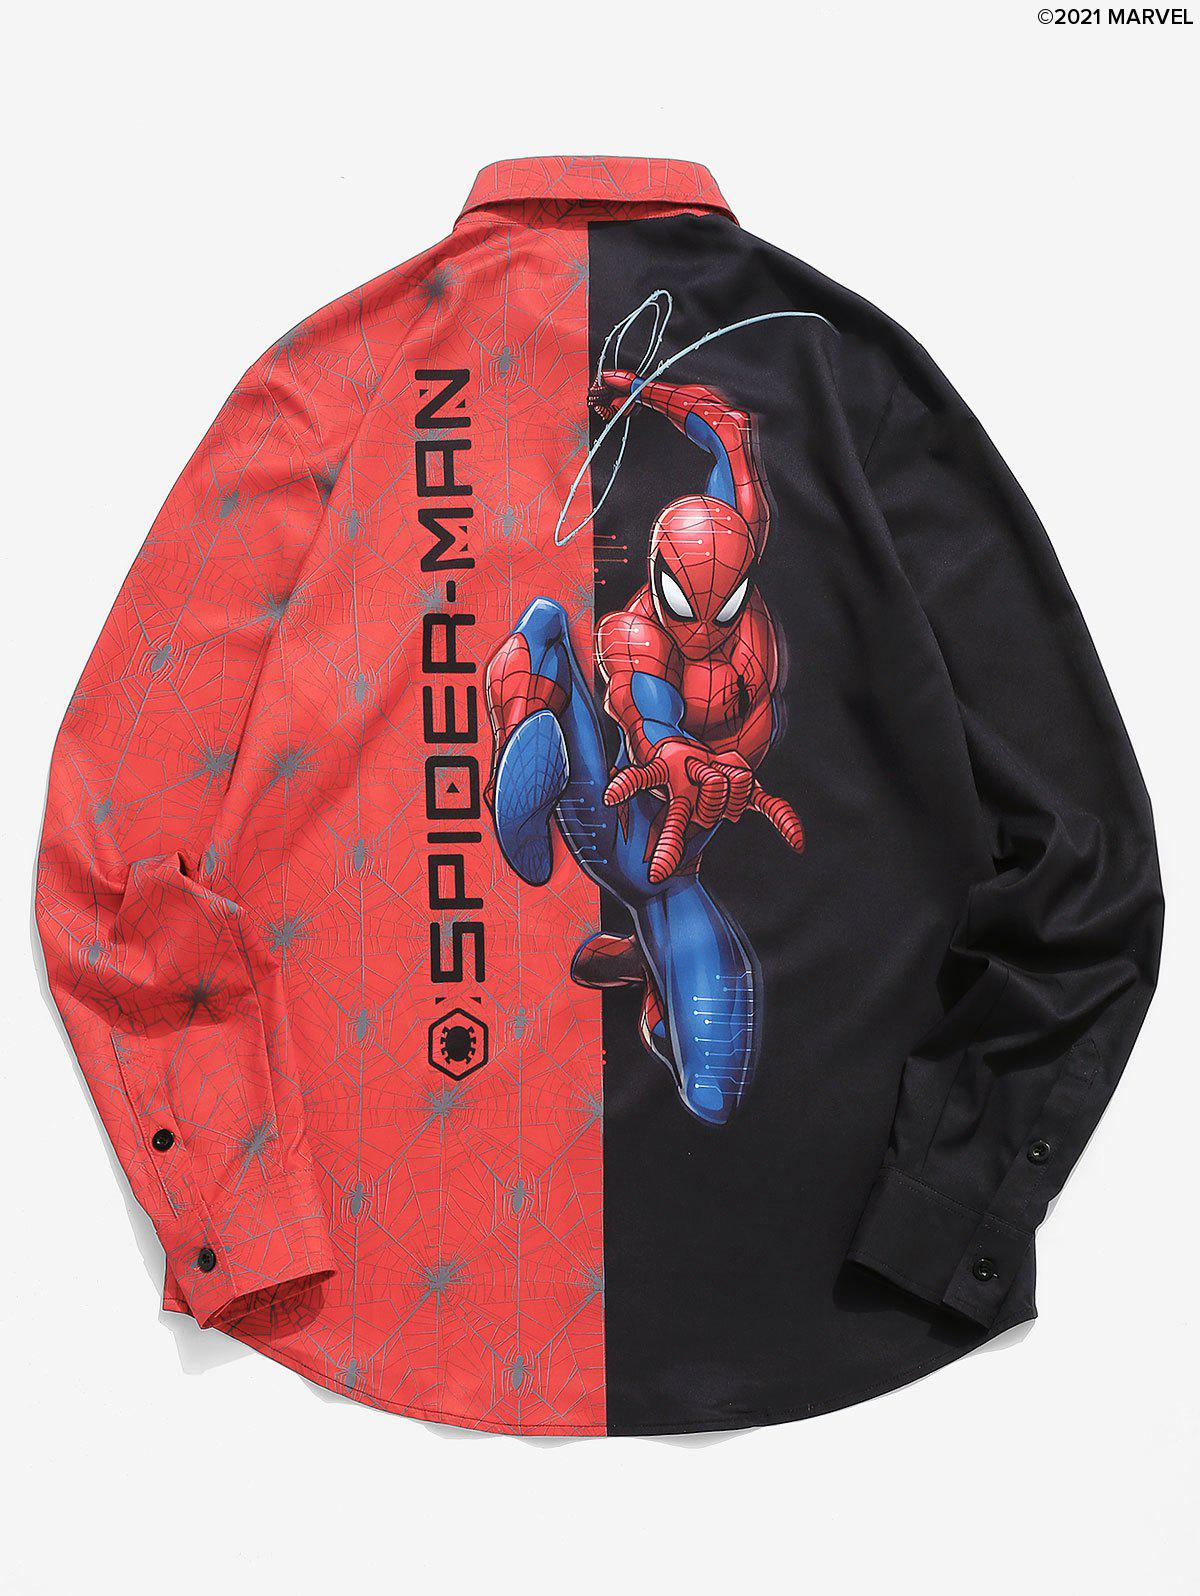 Shop Marvel Spider-Man Contrast Print Long Sleeve Graphic Shirt